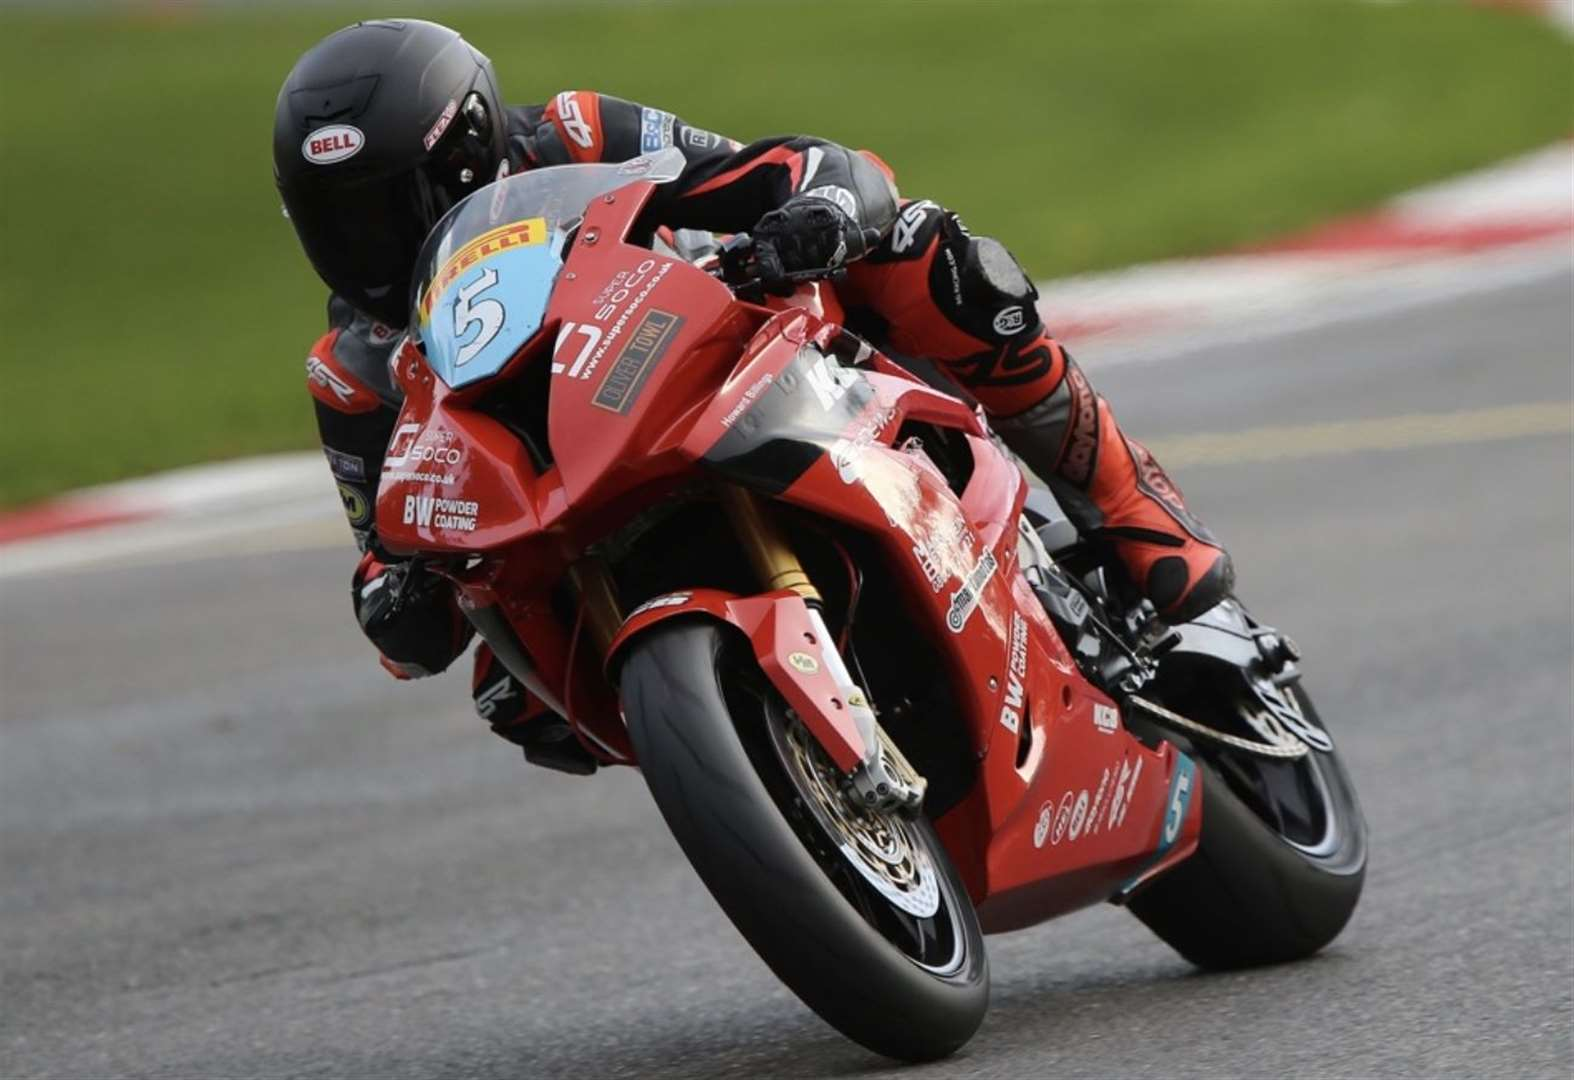 MOTORCYCLING: Aaron picks up penalty